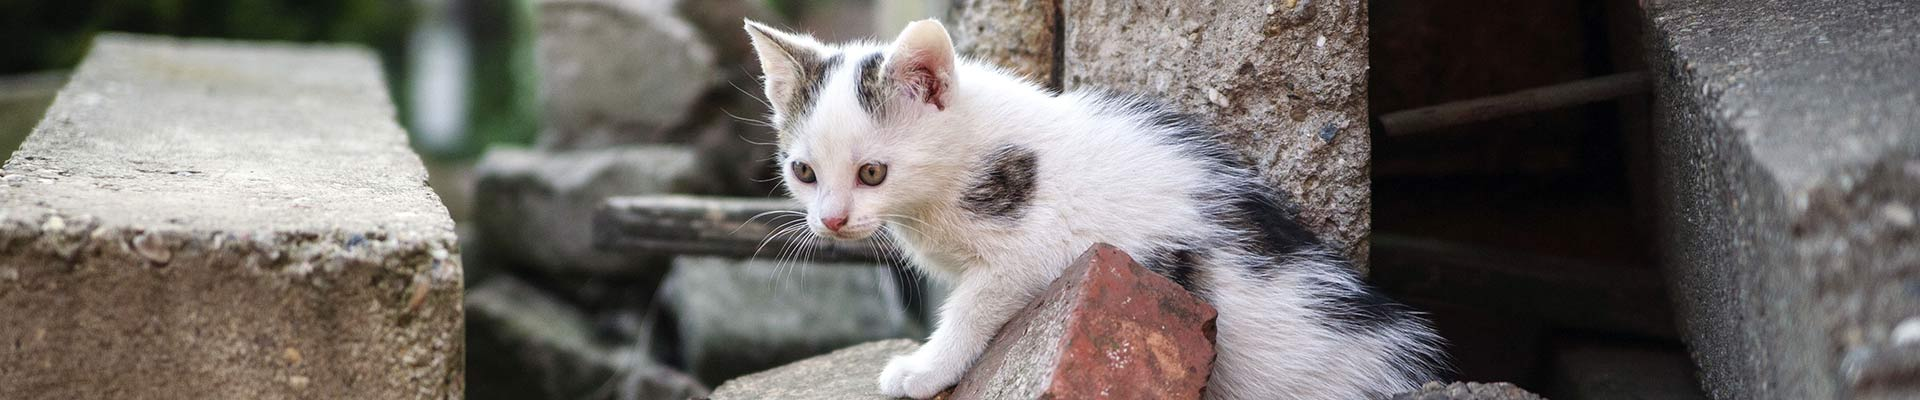 Kitten wandering outdoors